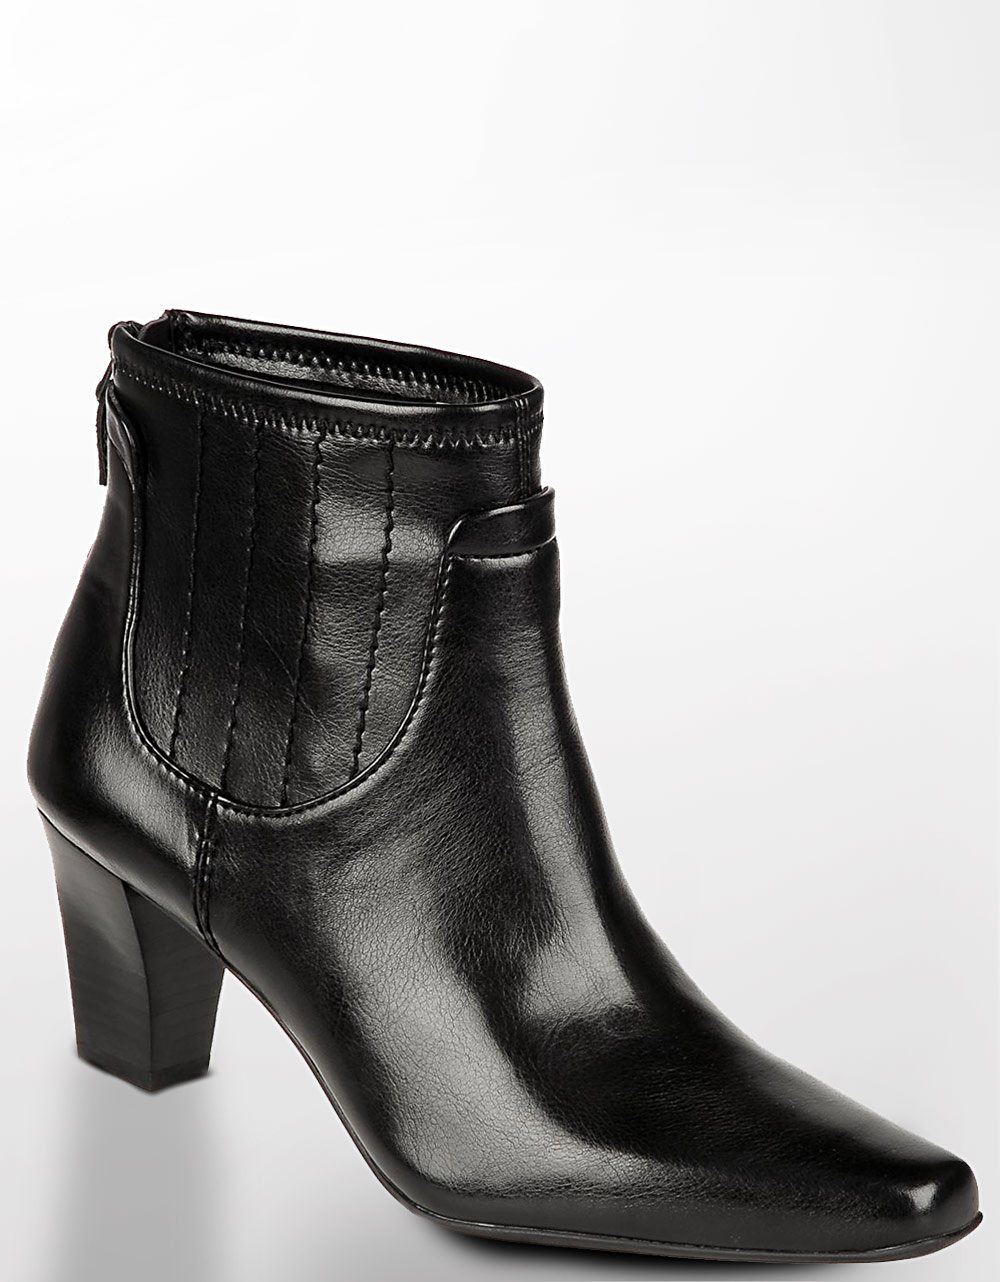 Franco Sarto Tempo Leather Booties In Black Black Leather